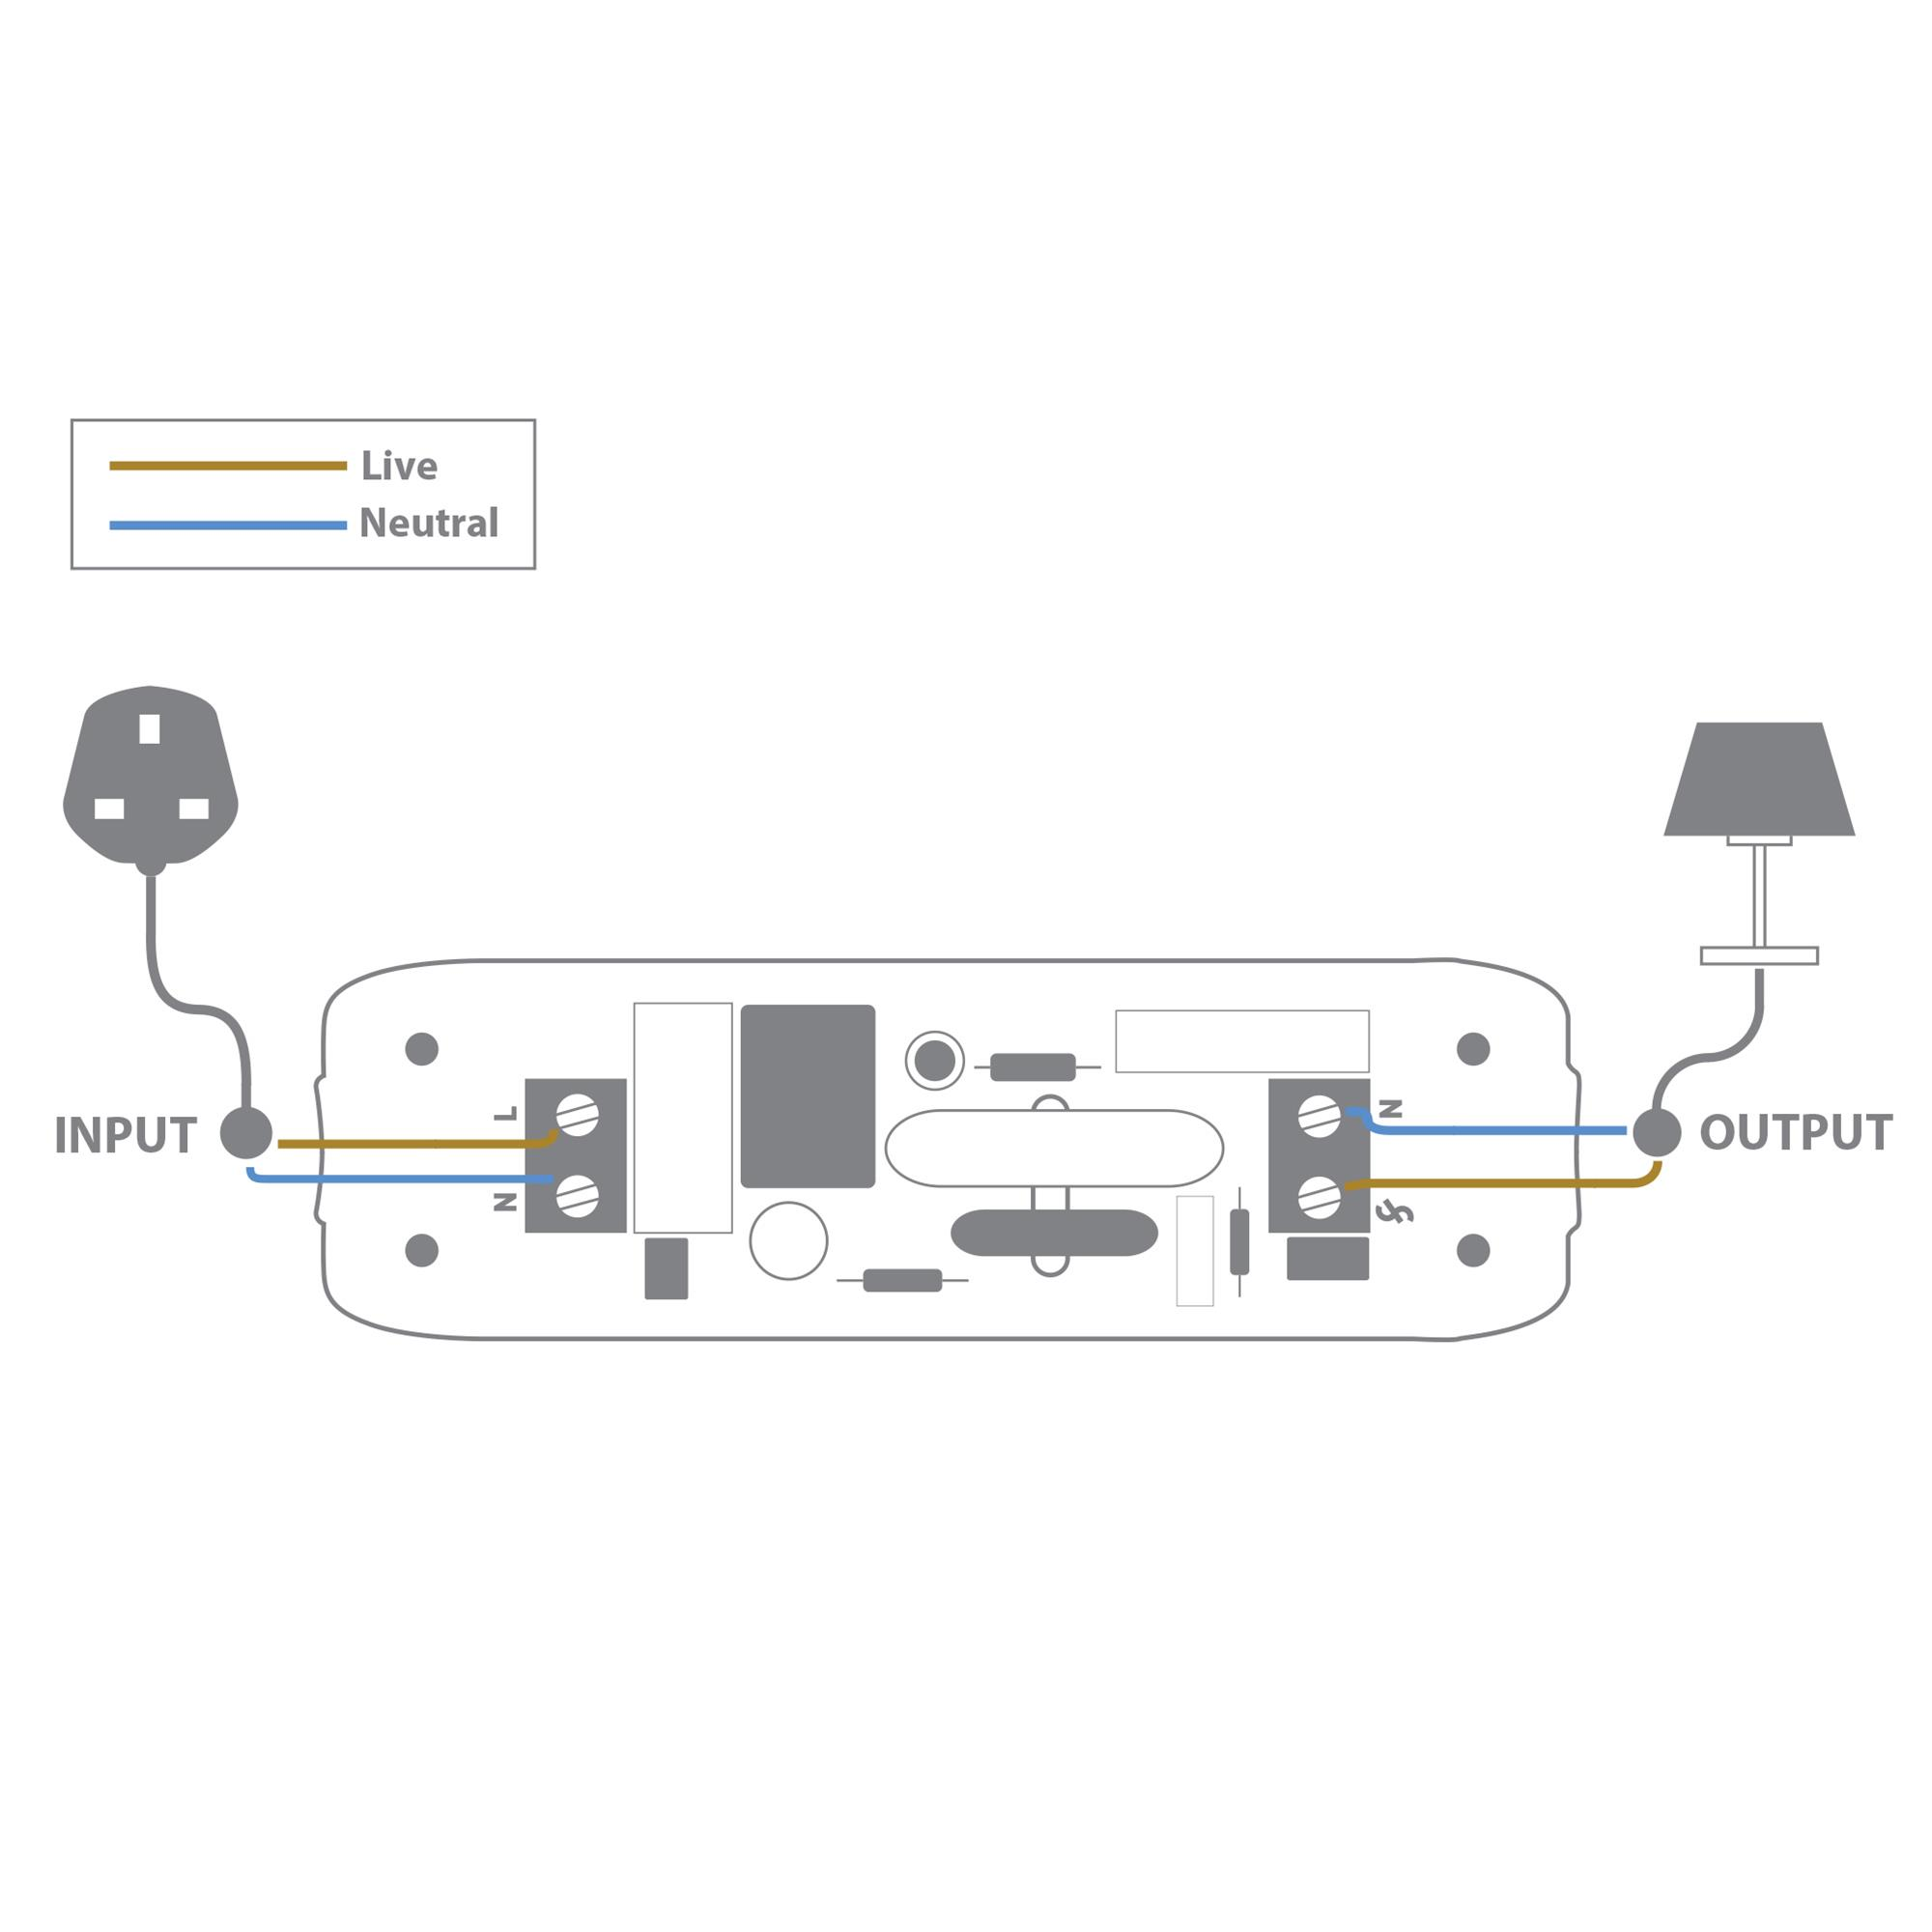 Wiring A Switch In Line Real Diagram Single Light With Plugs 2 Core Rotary Dimmer 240v Black 160w Mr Resistor Switches And